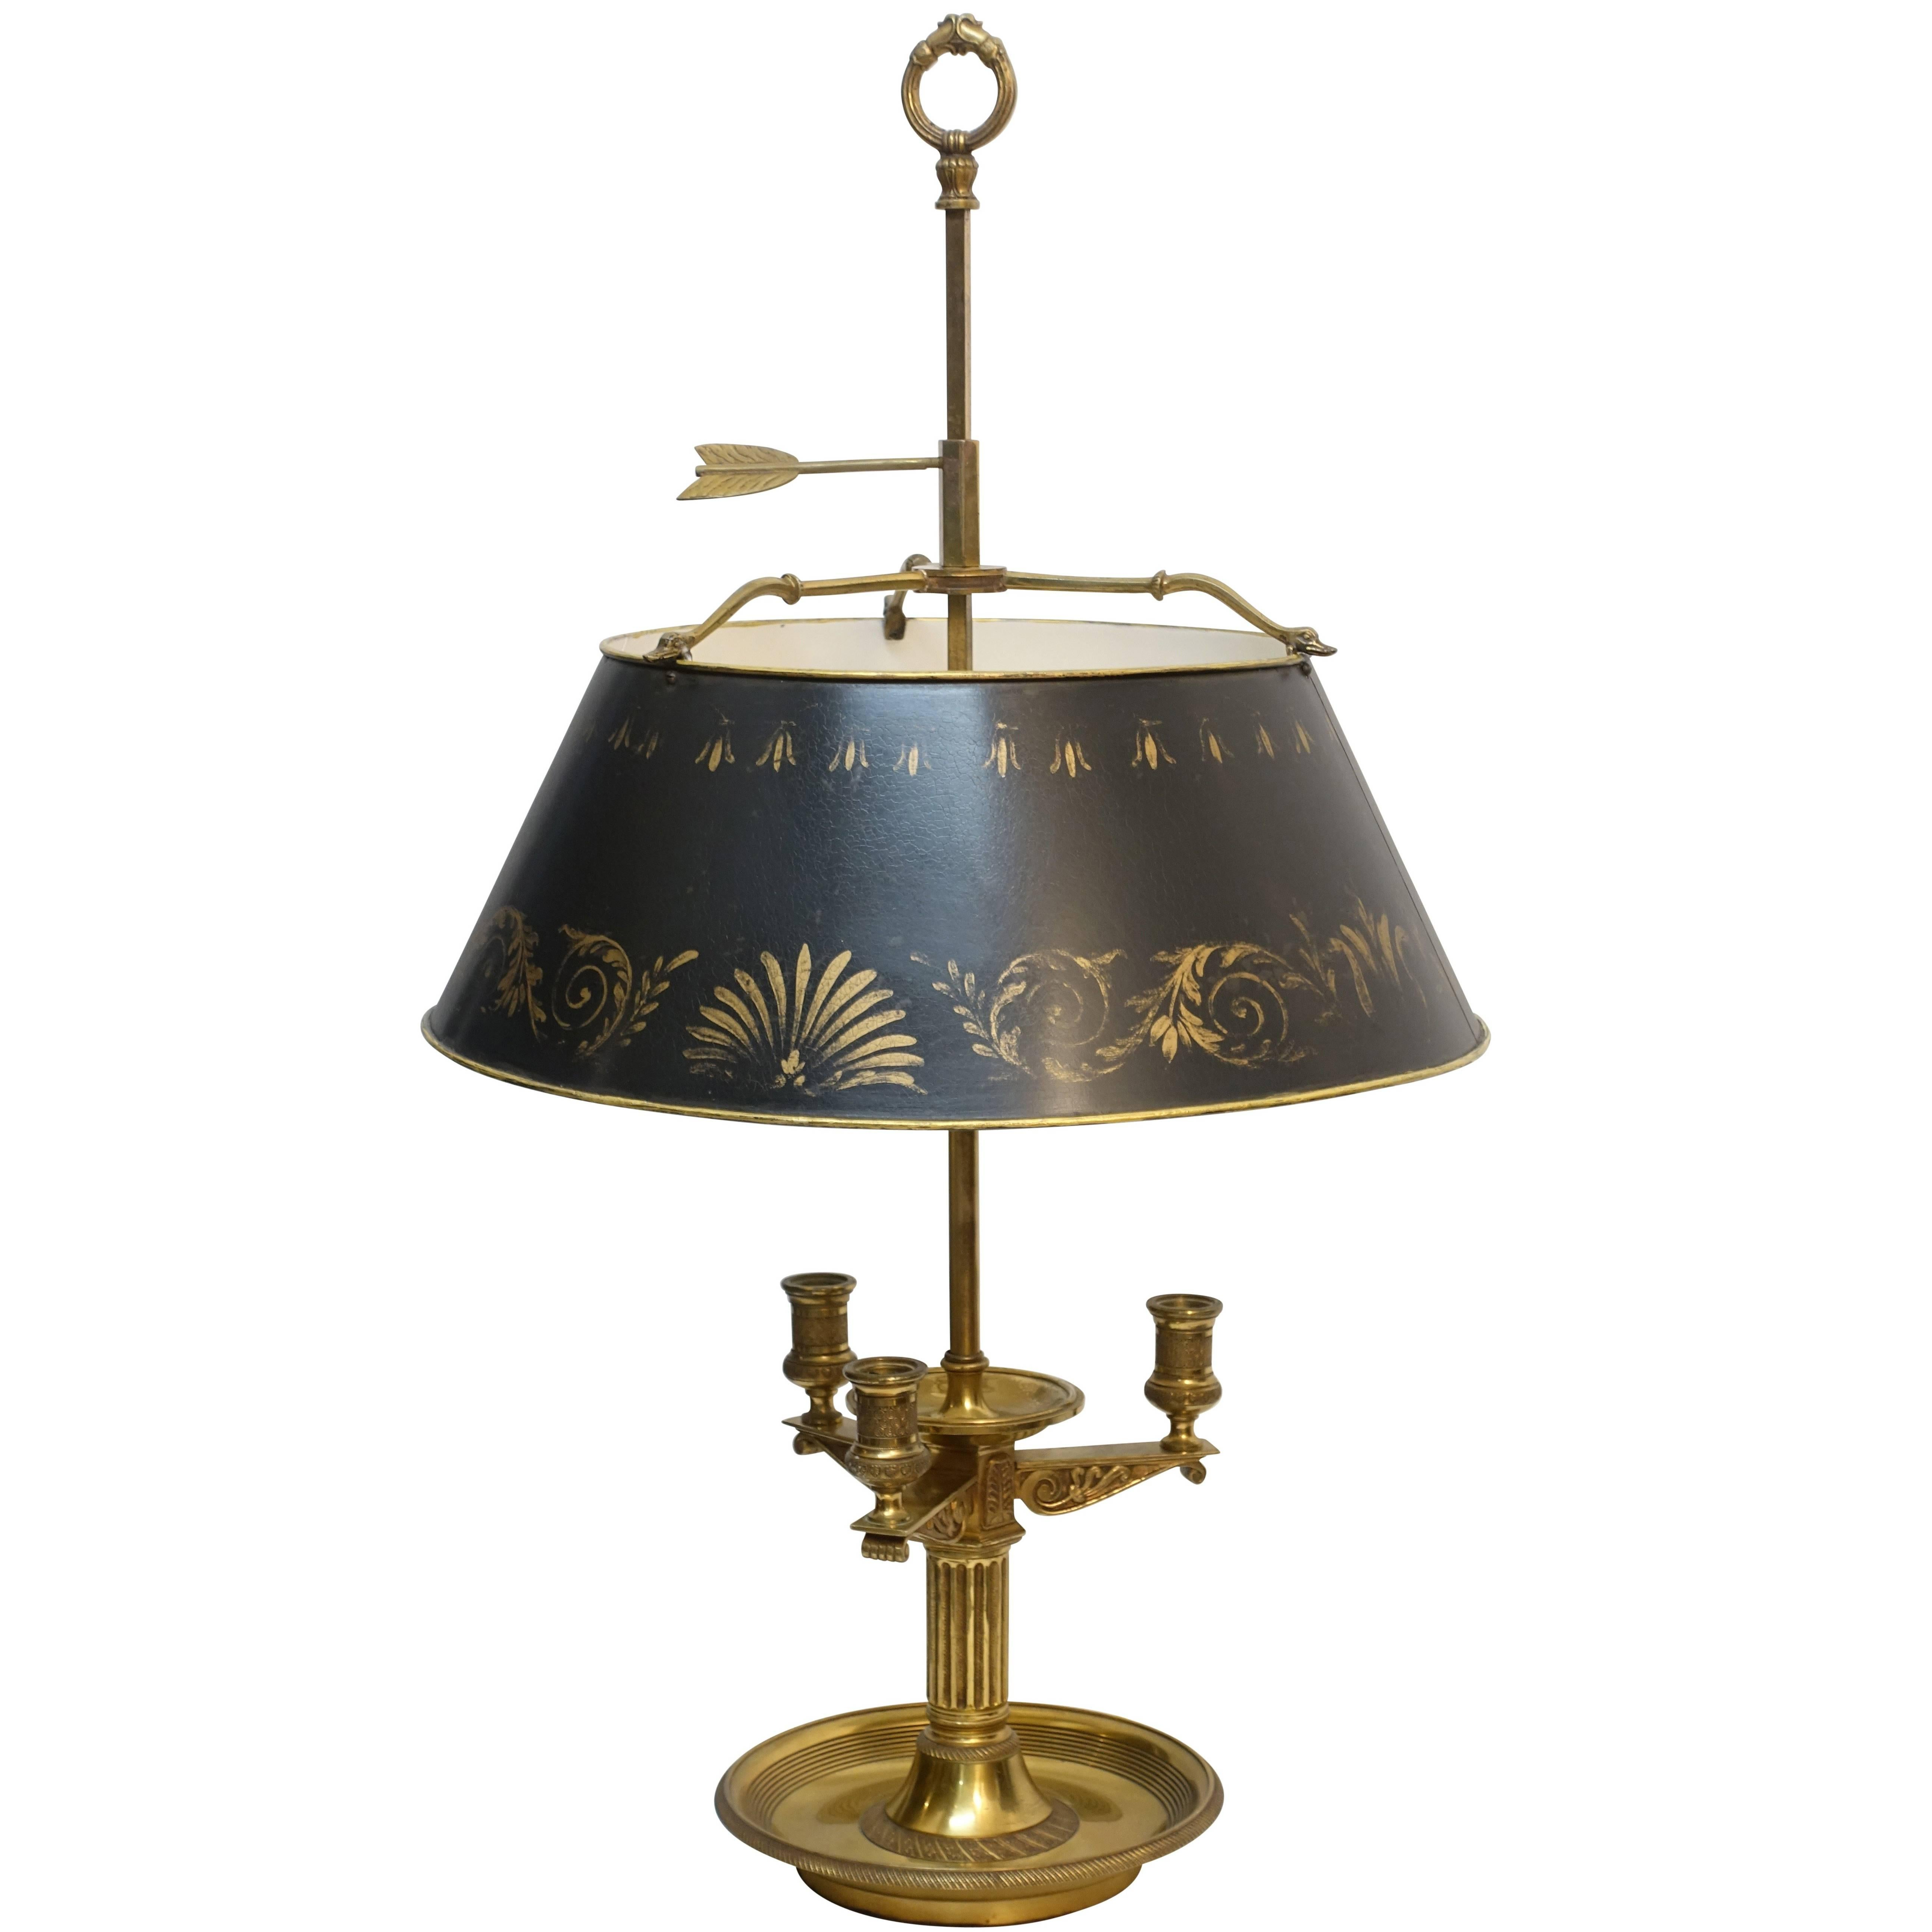 Reproduction Solid Brass Bouillotte Lamp with Metal Shade and Fine ...